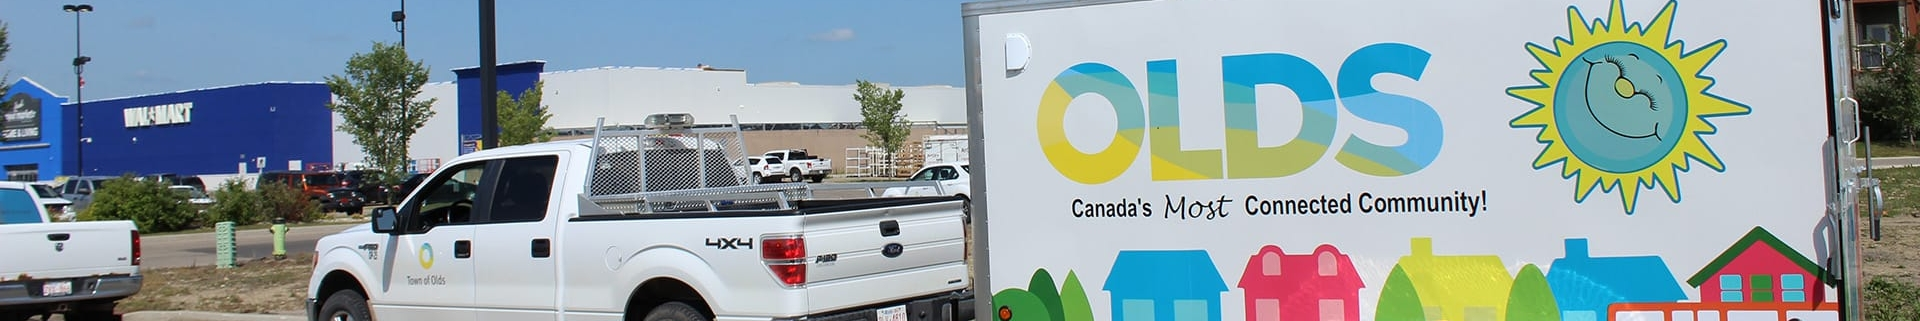 """White pick up truck with the Town of Olds municipal logo with a colourful trailer hitched to the back, reading """"Olds - Canada's most connected community!"""""""